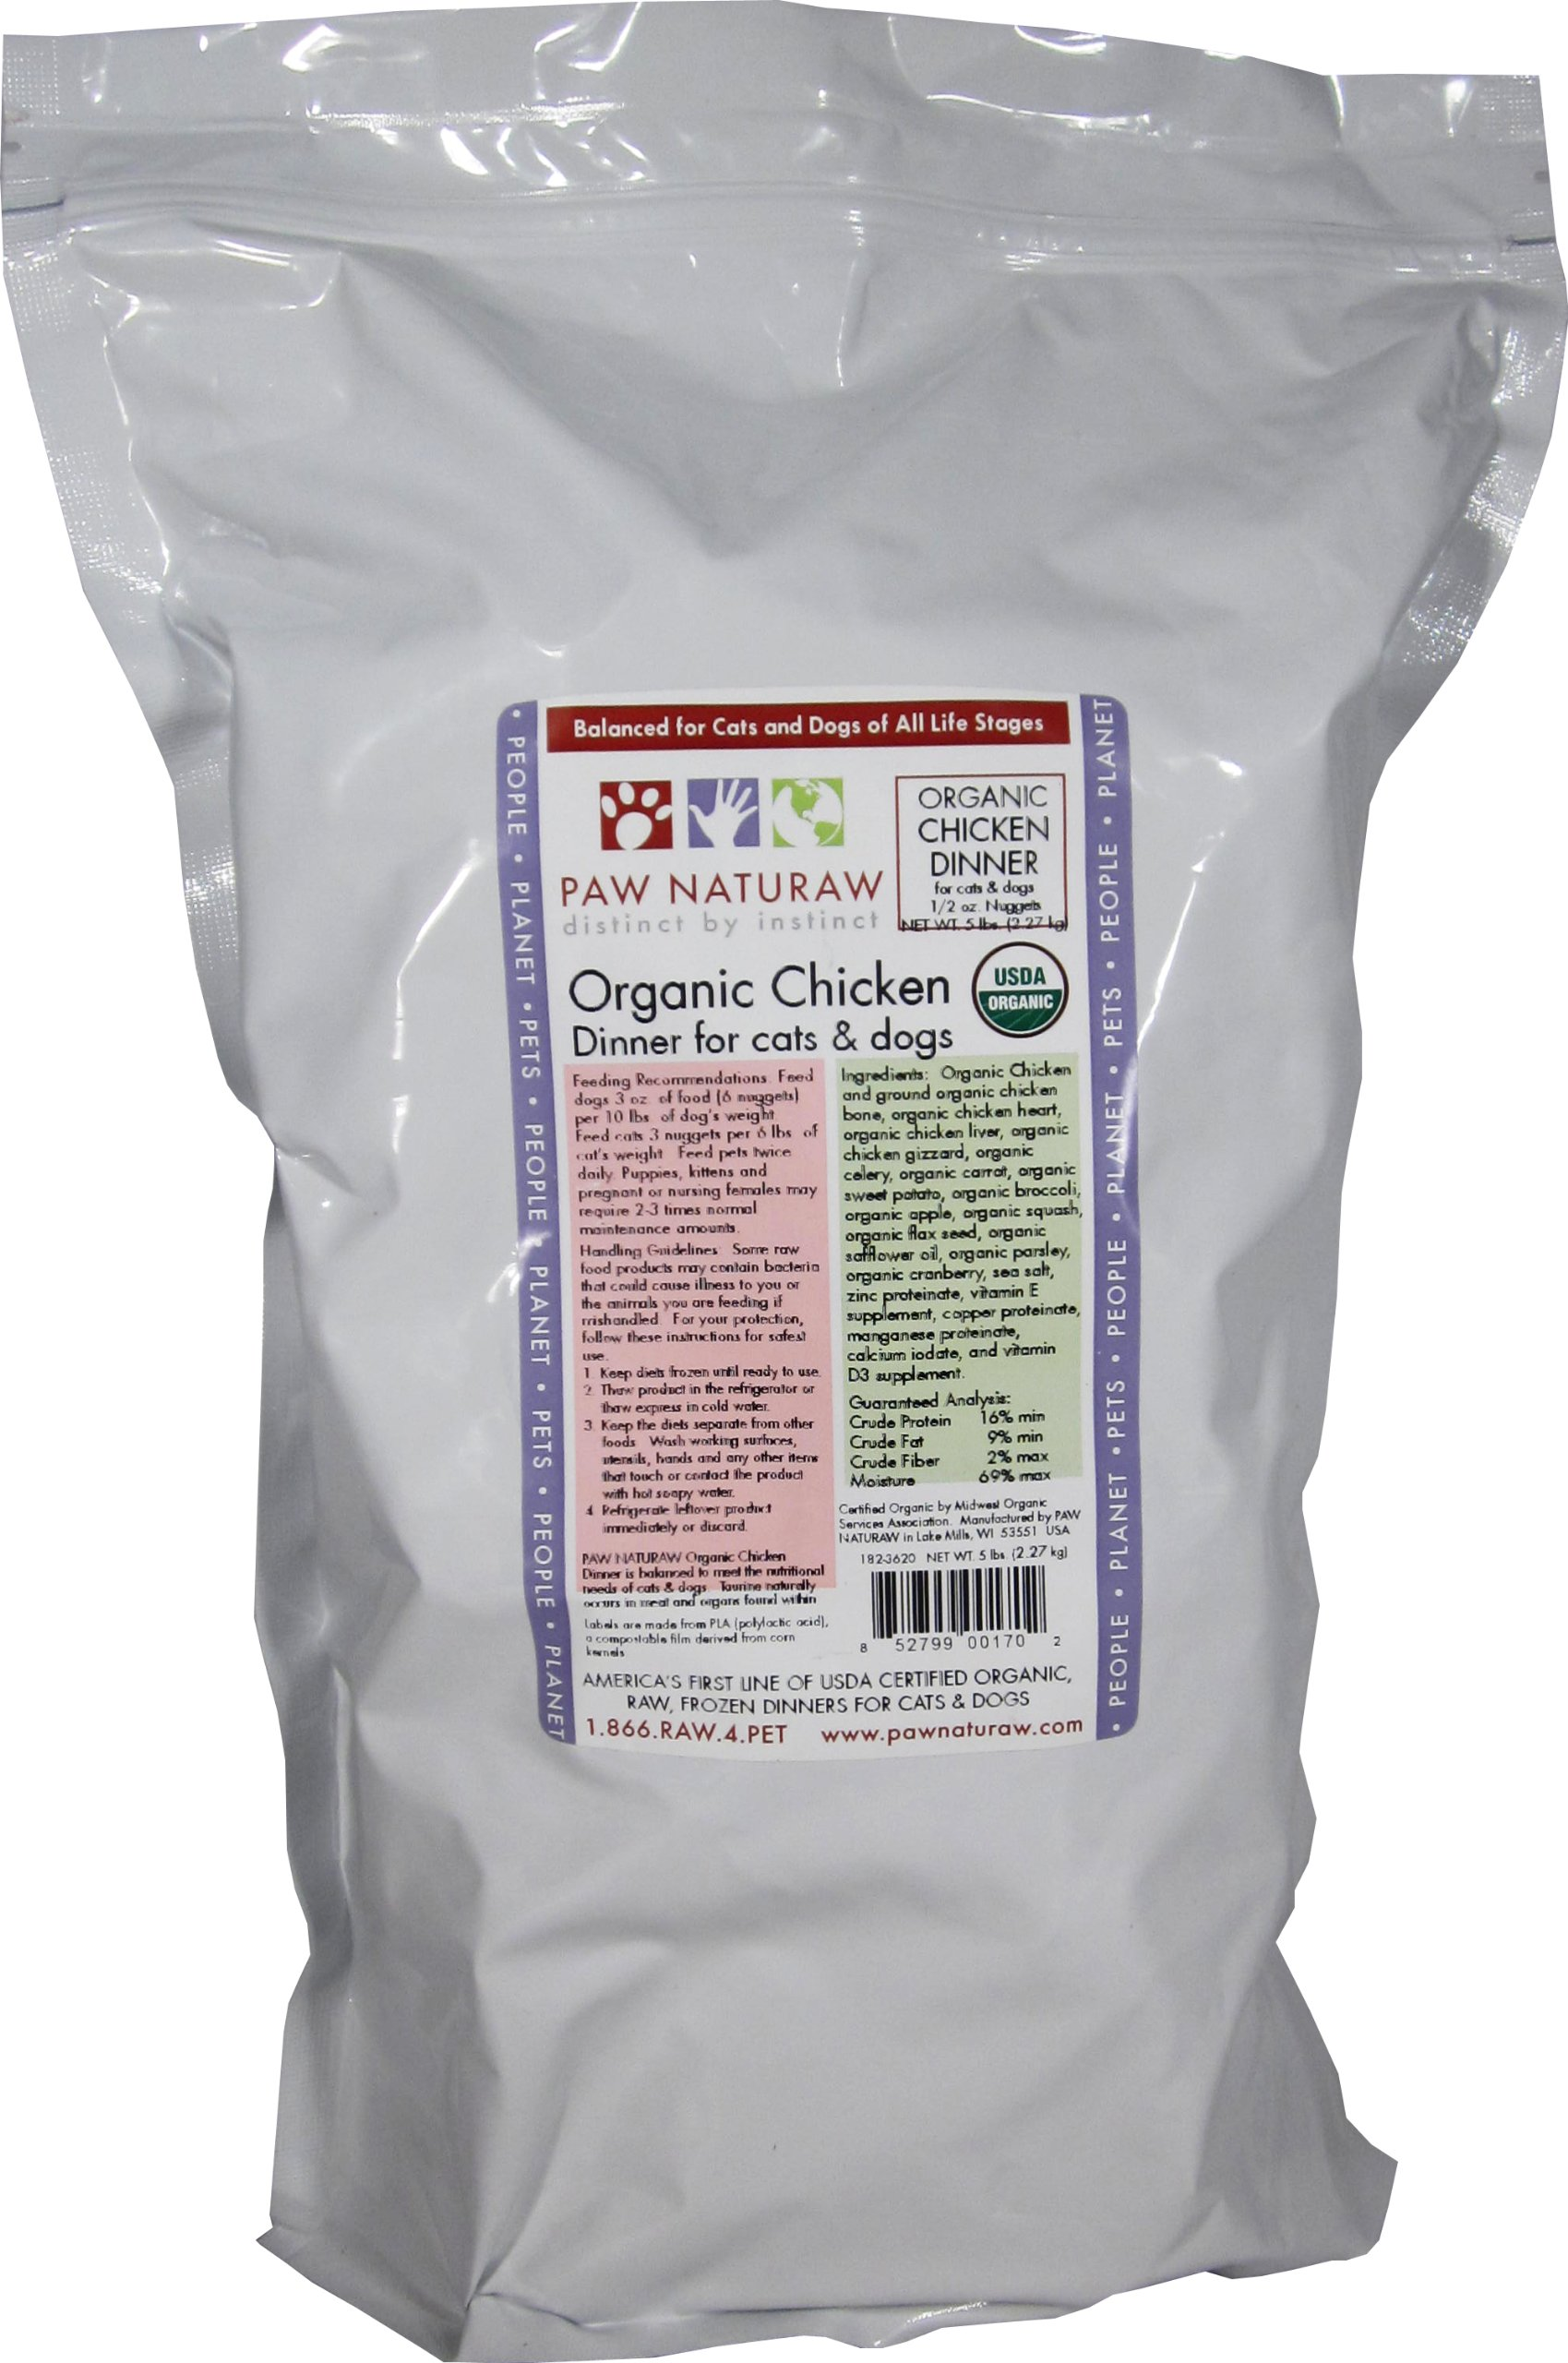 PAW NATURAW distinct by instinct Paw Naturaw Organic Chicken Dinner for Cats and Dogs, nuggets, 80-Ounce Bag